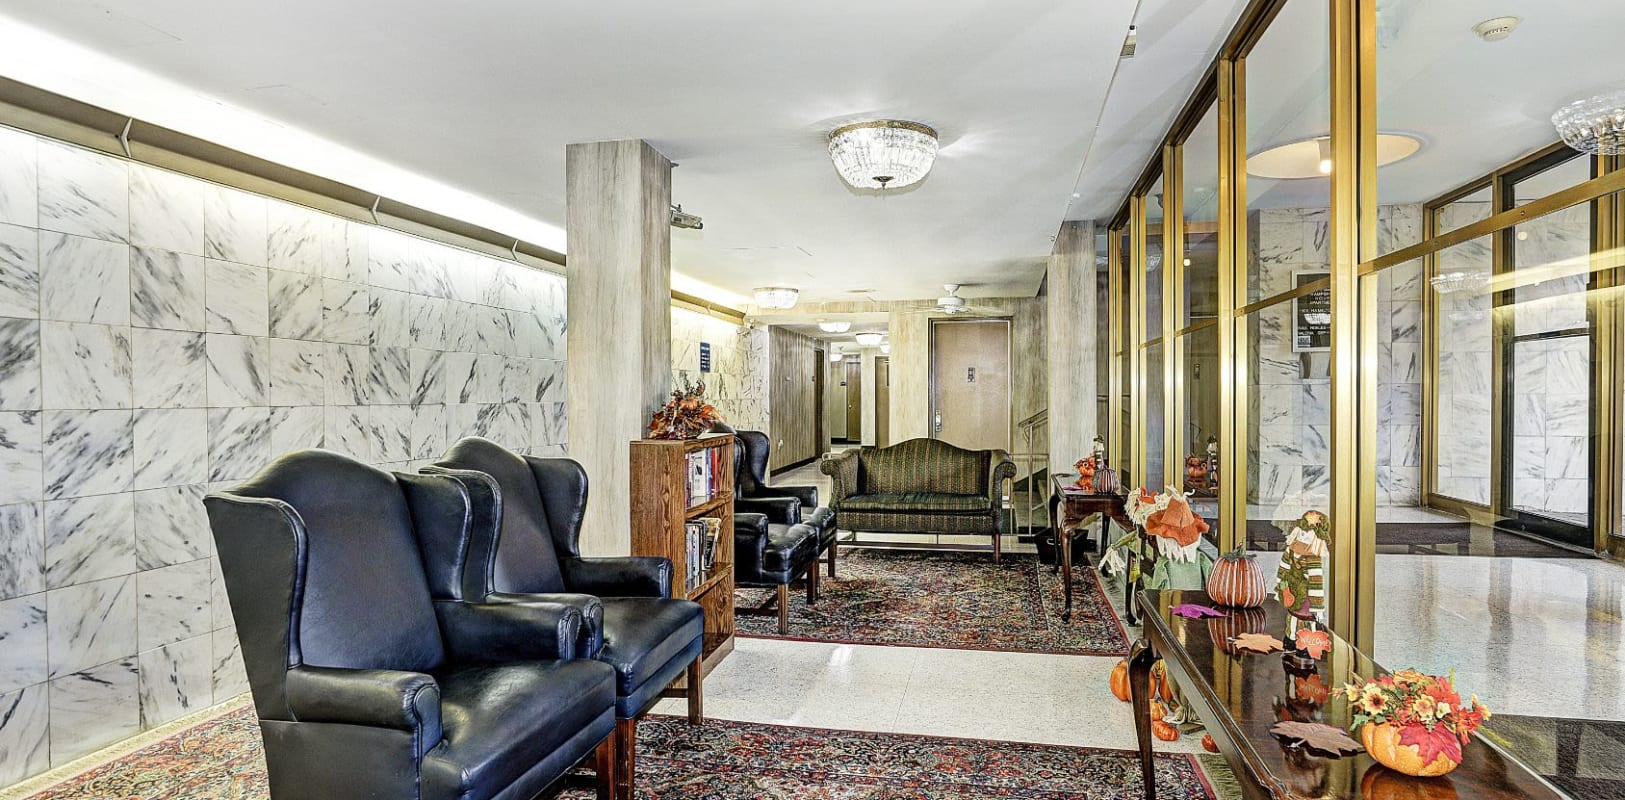 Lobby area at Hampshire House in Allentown, Pennsylvania